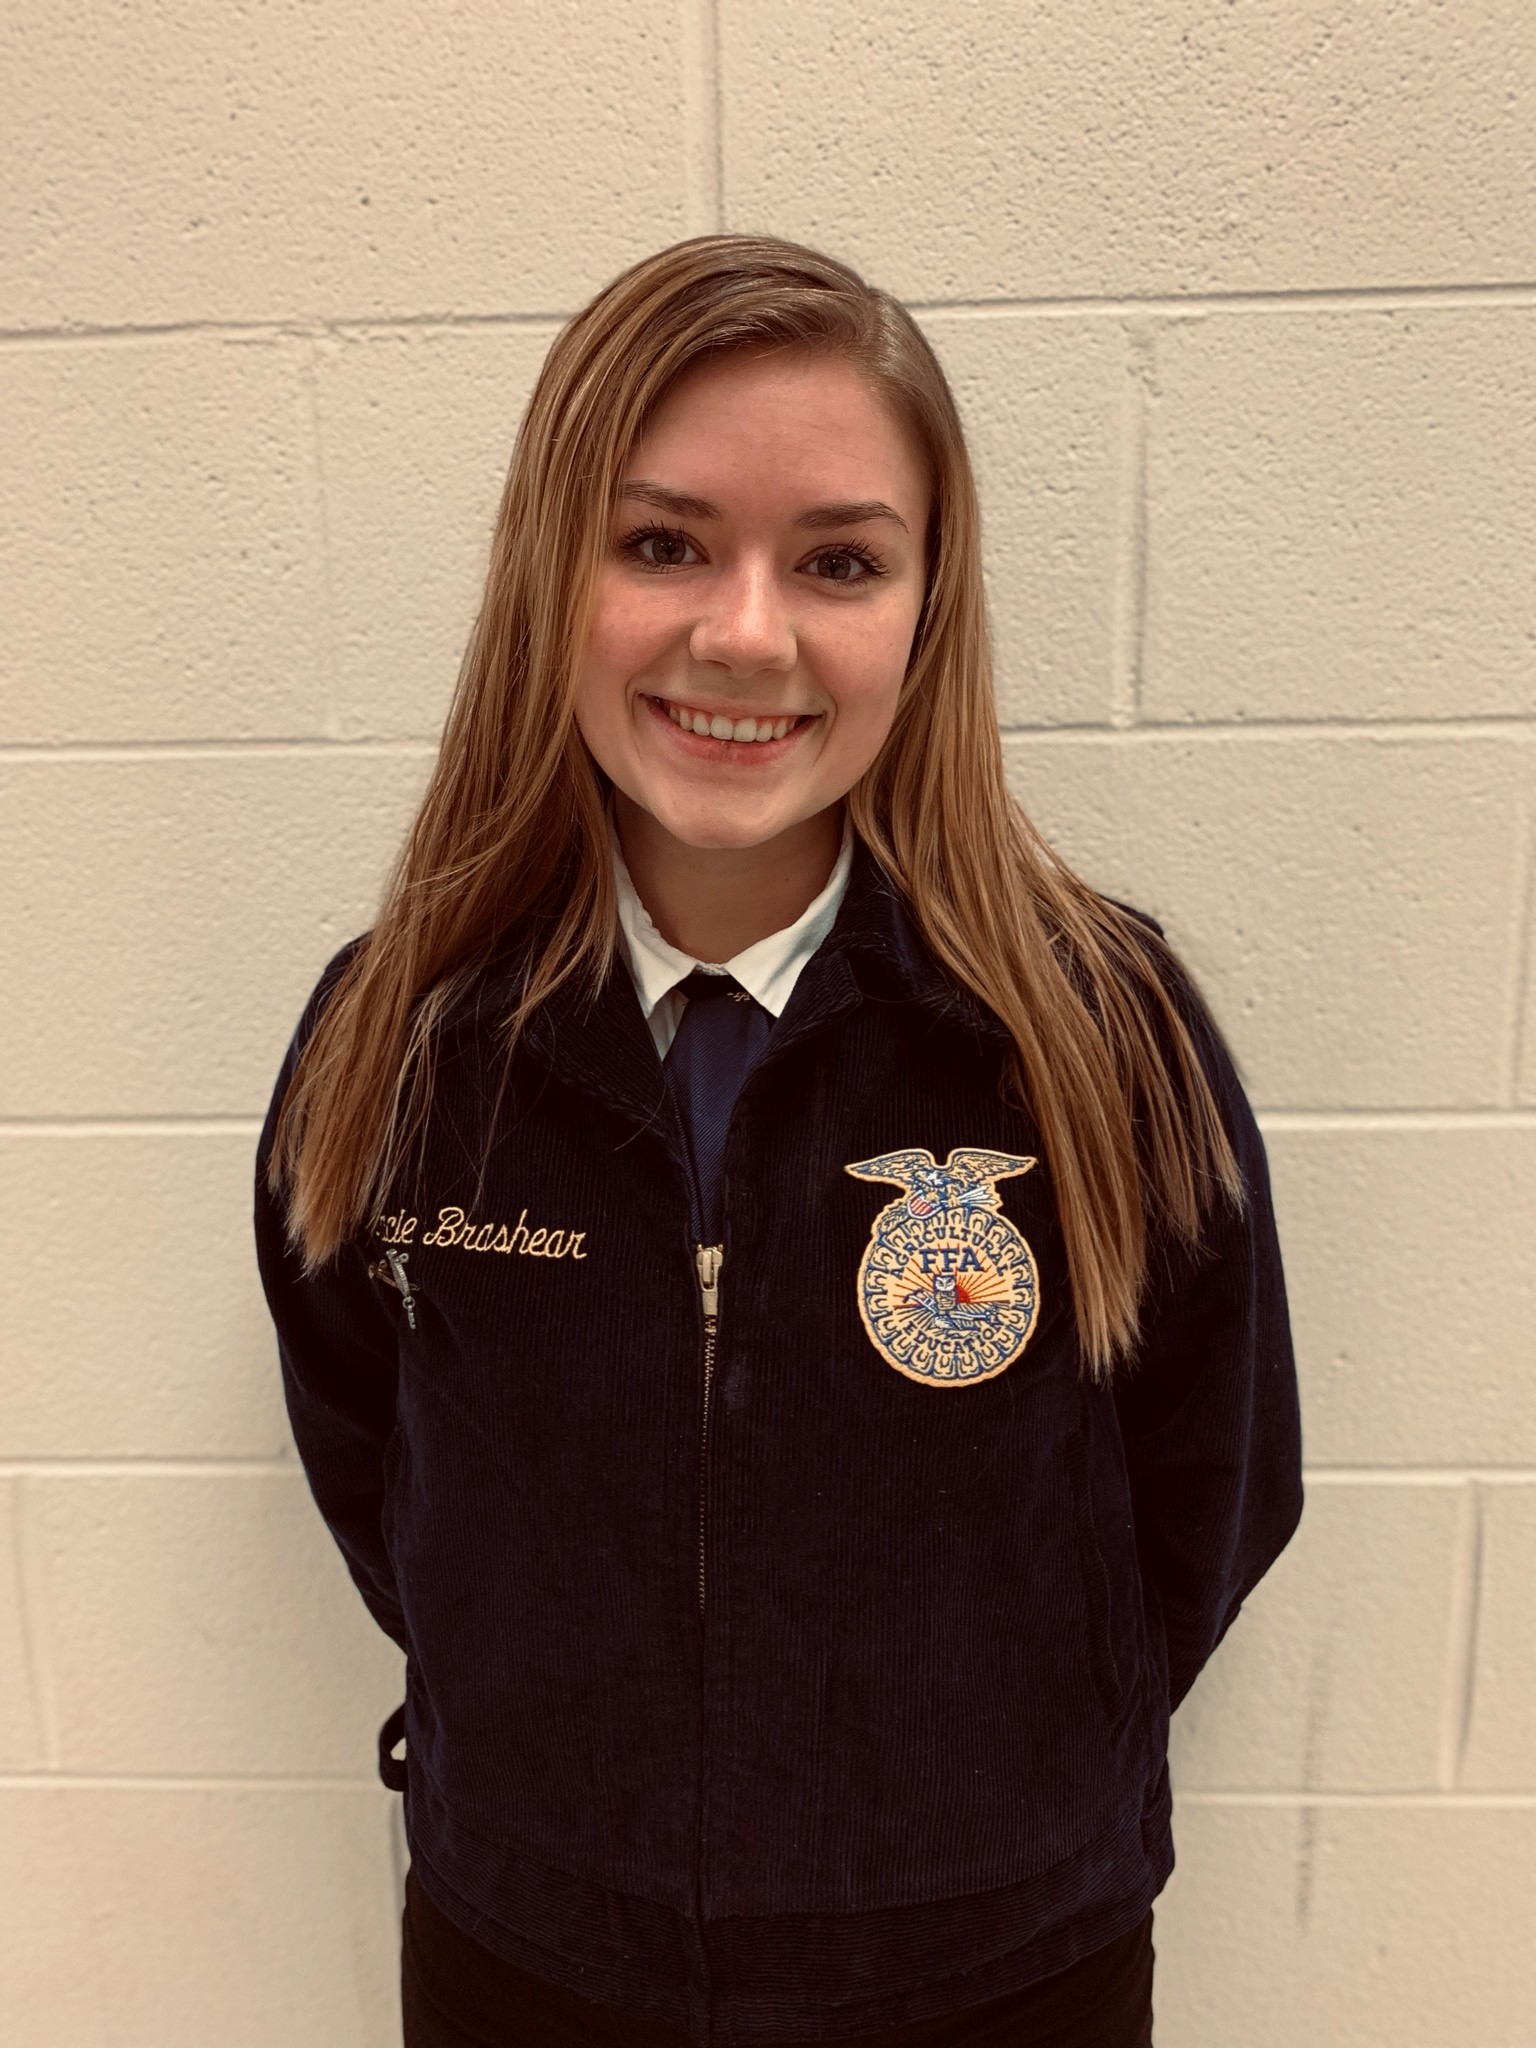 Gracie Brashear Regional Reporter for Ky River Region